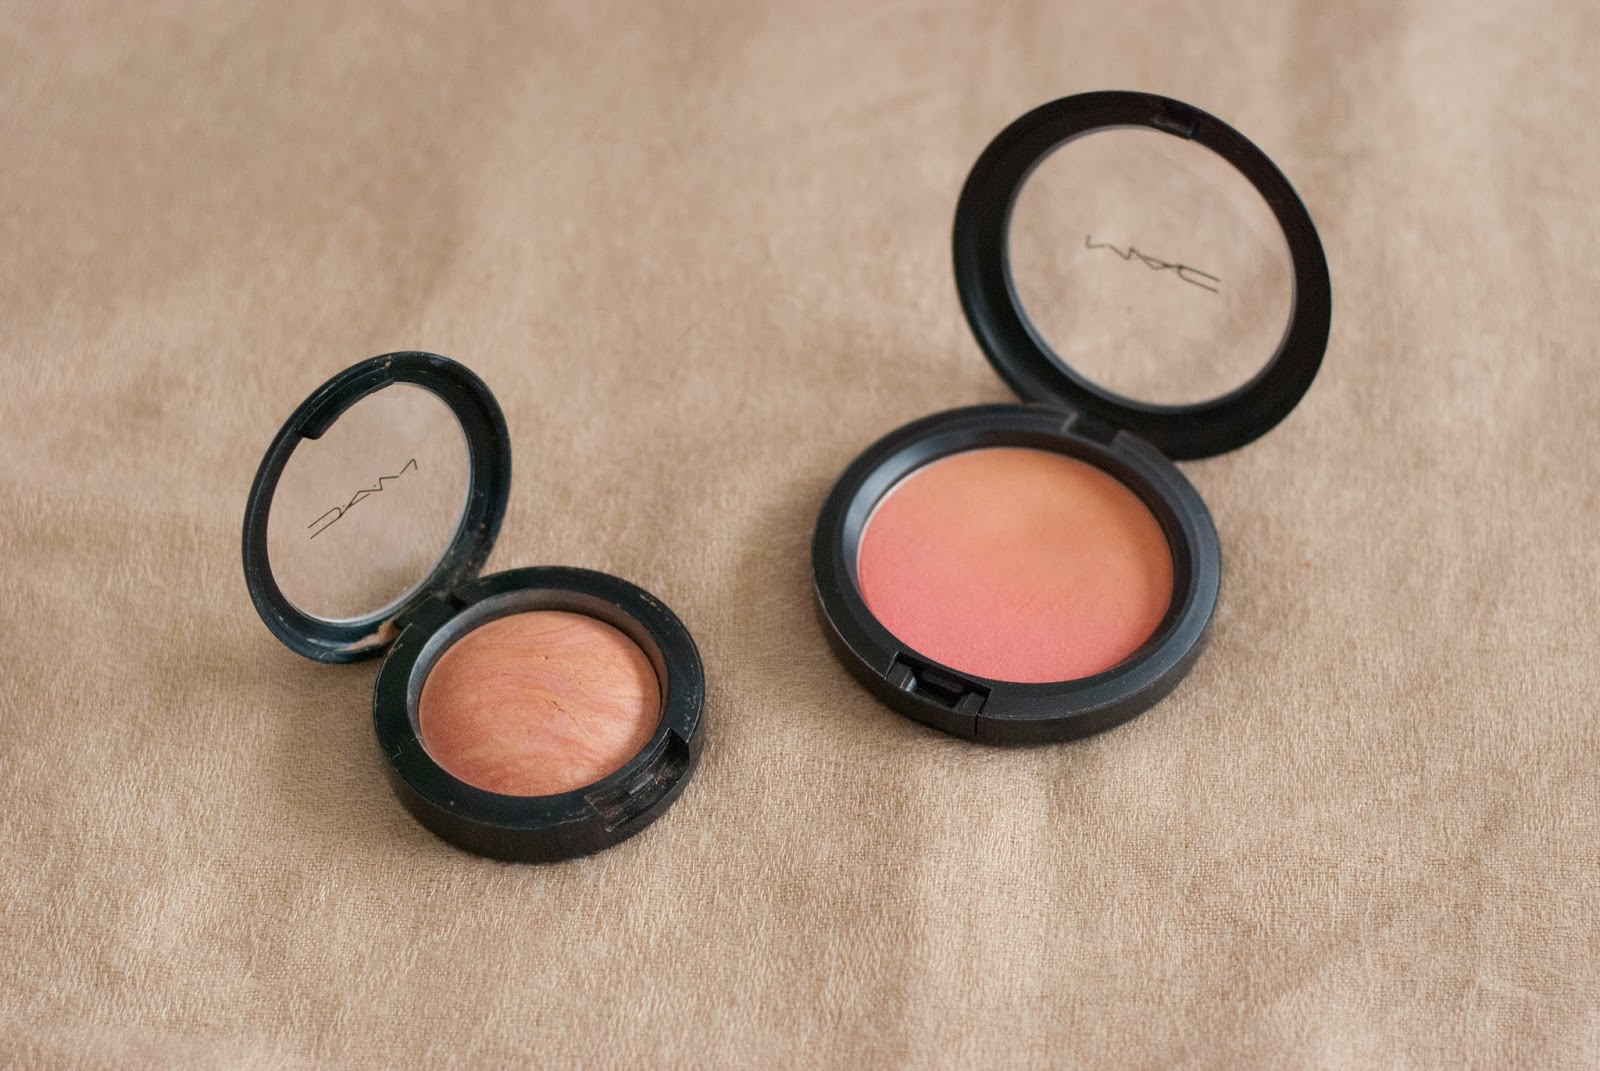 Blush Collection - The peach